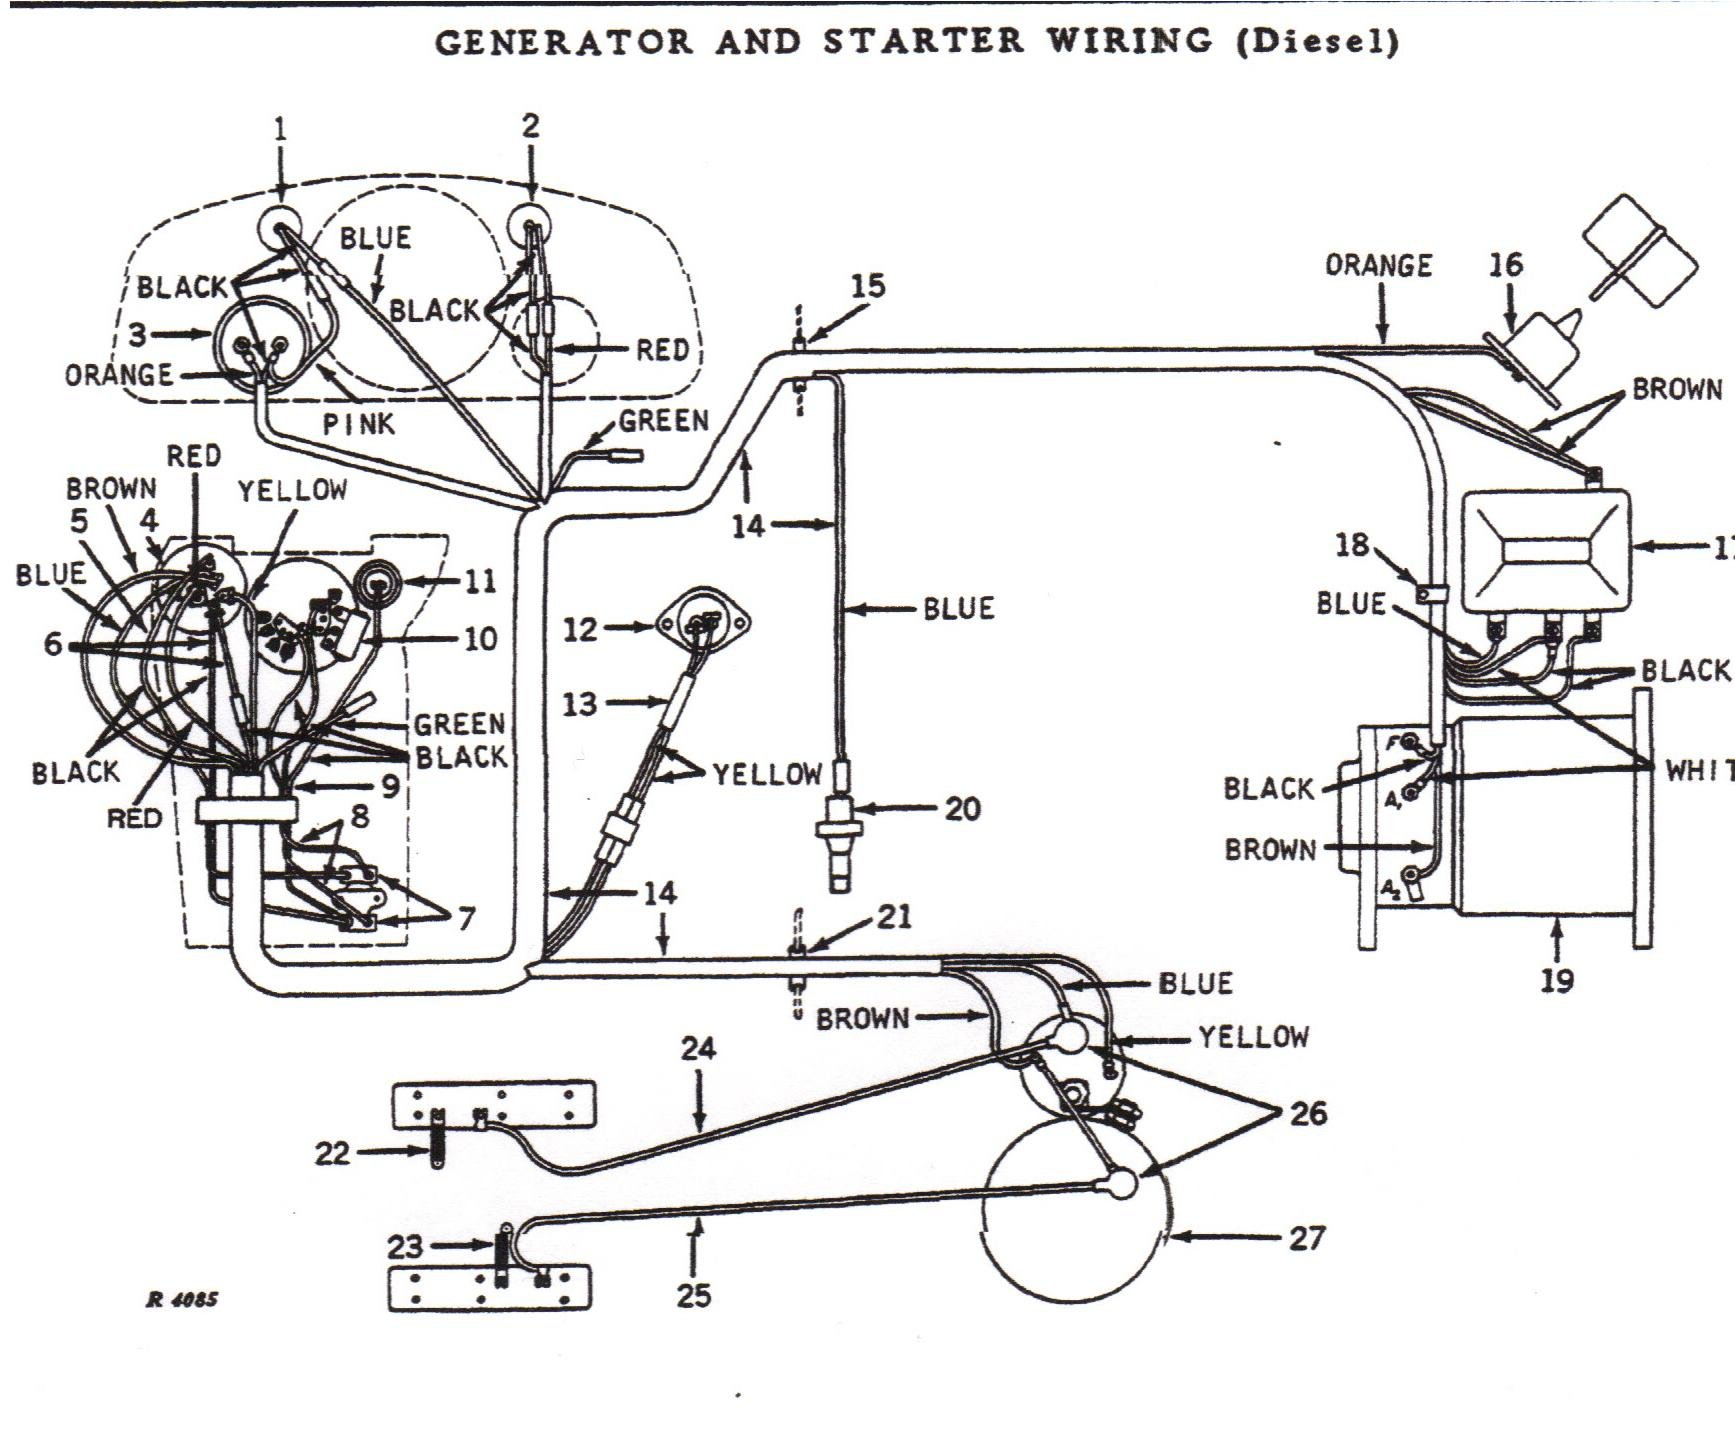 Jd 2355 Wiring Diagram - Wiring Diagram & Cable Management Jd Wiring Diagram on